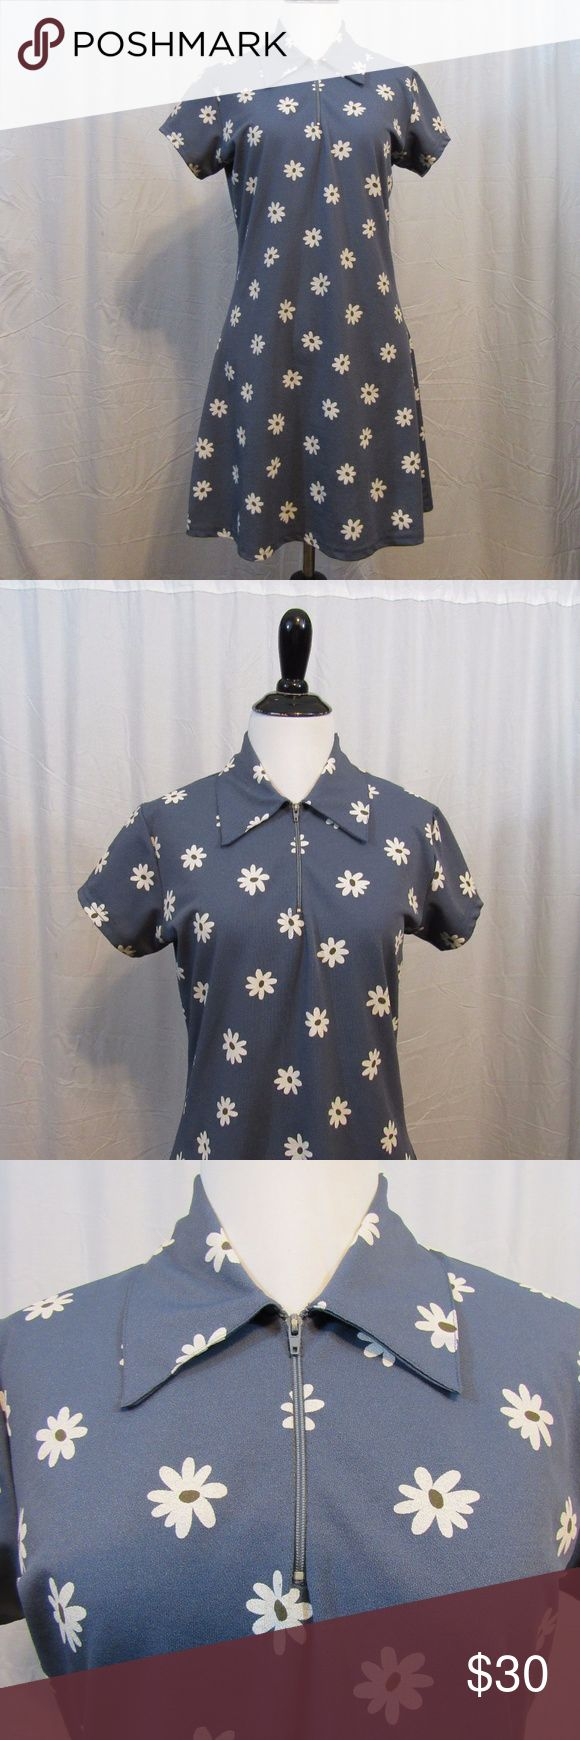 "Joule Blue Daisy Floral Short Sleeve Dress S Brand: Joule  Size: S Material: 100% Polyester Care Instructions: Machine Wash Bust: 37"" Sleeves: 5"" Length: 34""  All clothes have been inspected and are in excellent used condition unless otherwise noted. P52 Joules Dresses Mini"